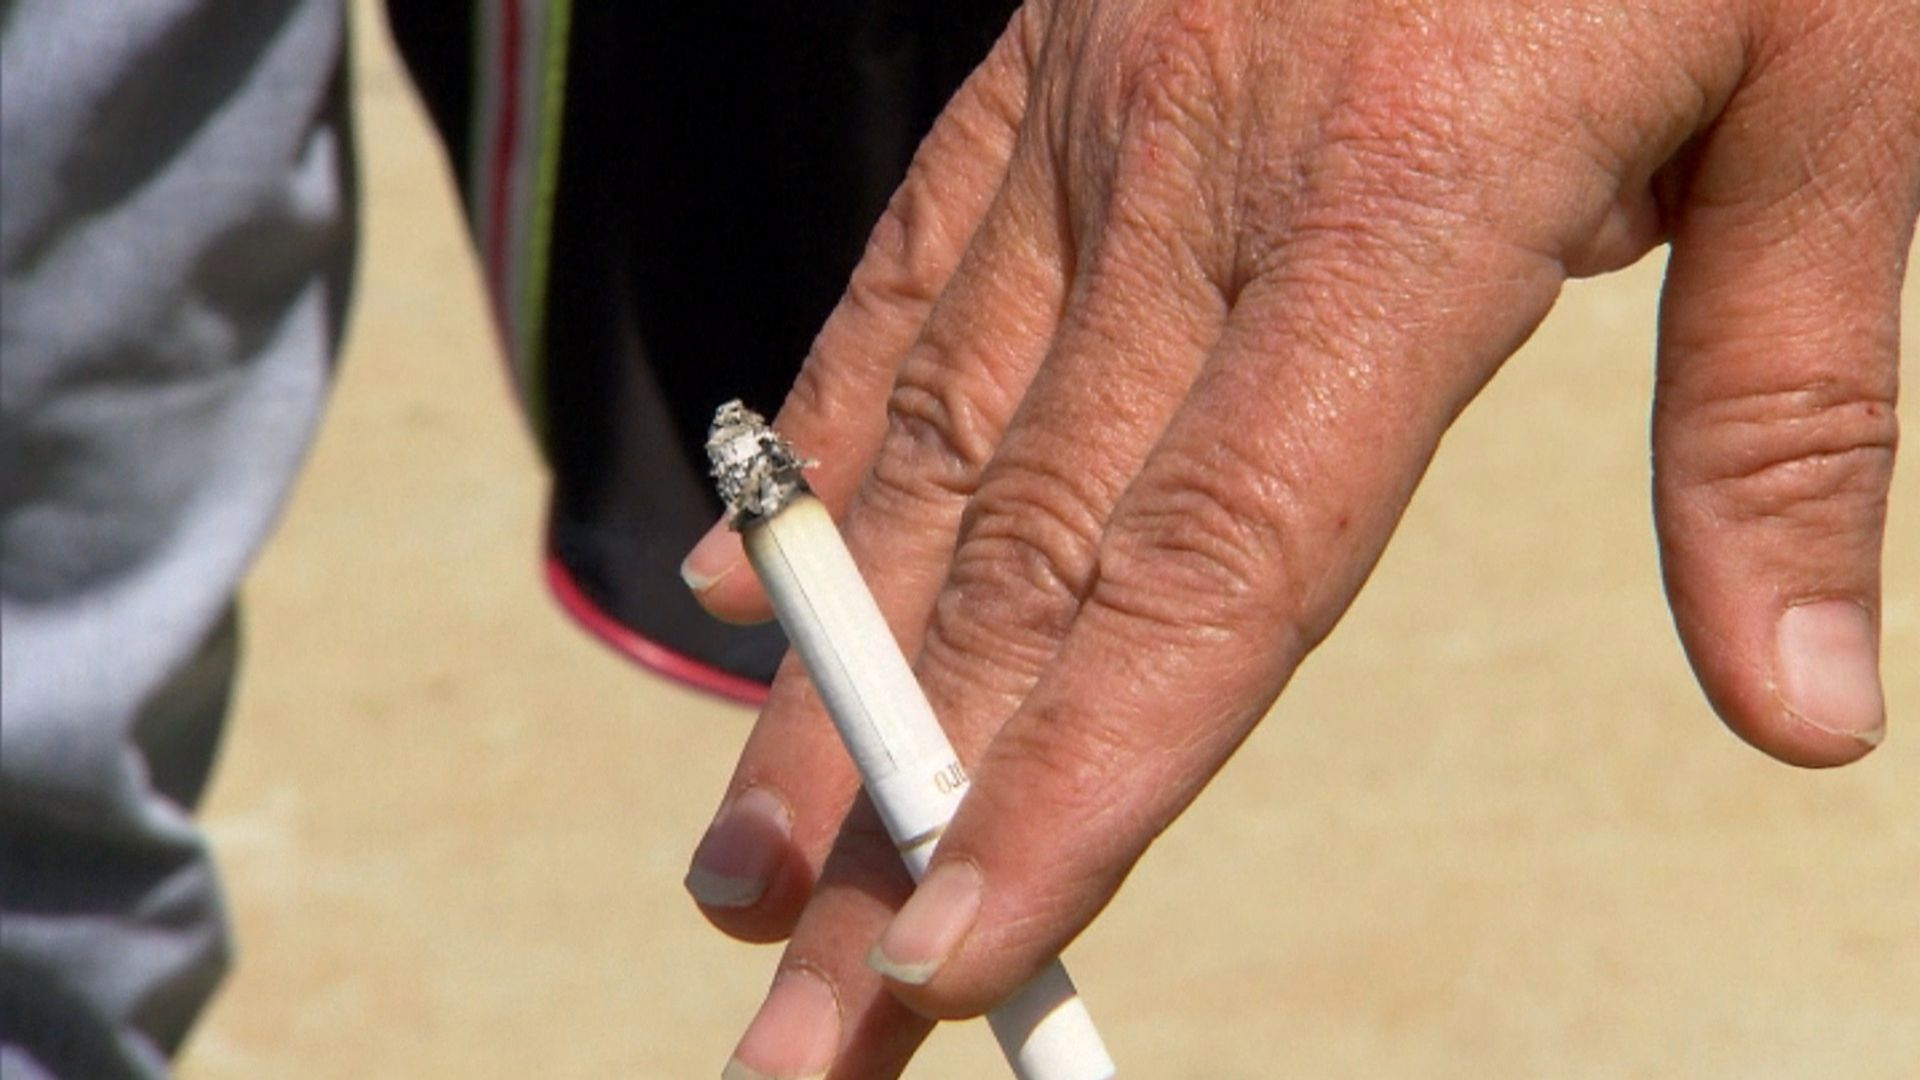 Rise of 'light smoking' among women causing widespread health concerns